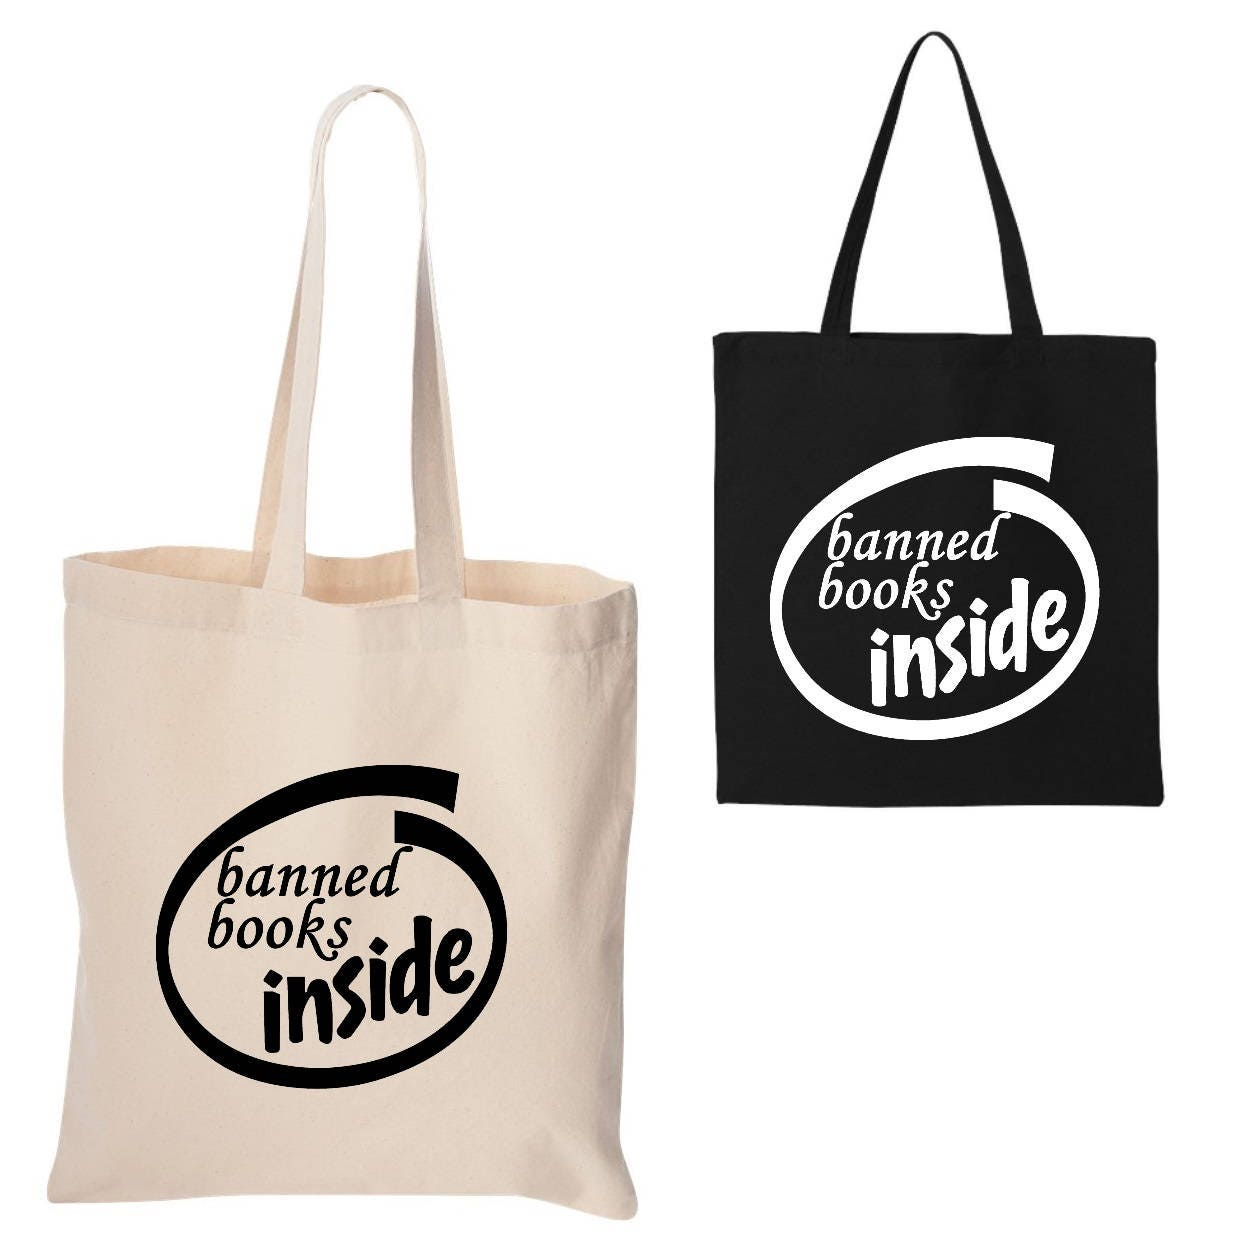 14169d66a704 I Read Banned Books Tote Bag - Banned Books Inside - I Read Books - Censored